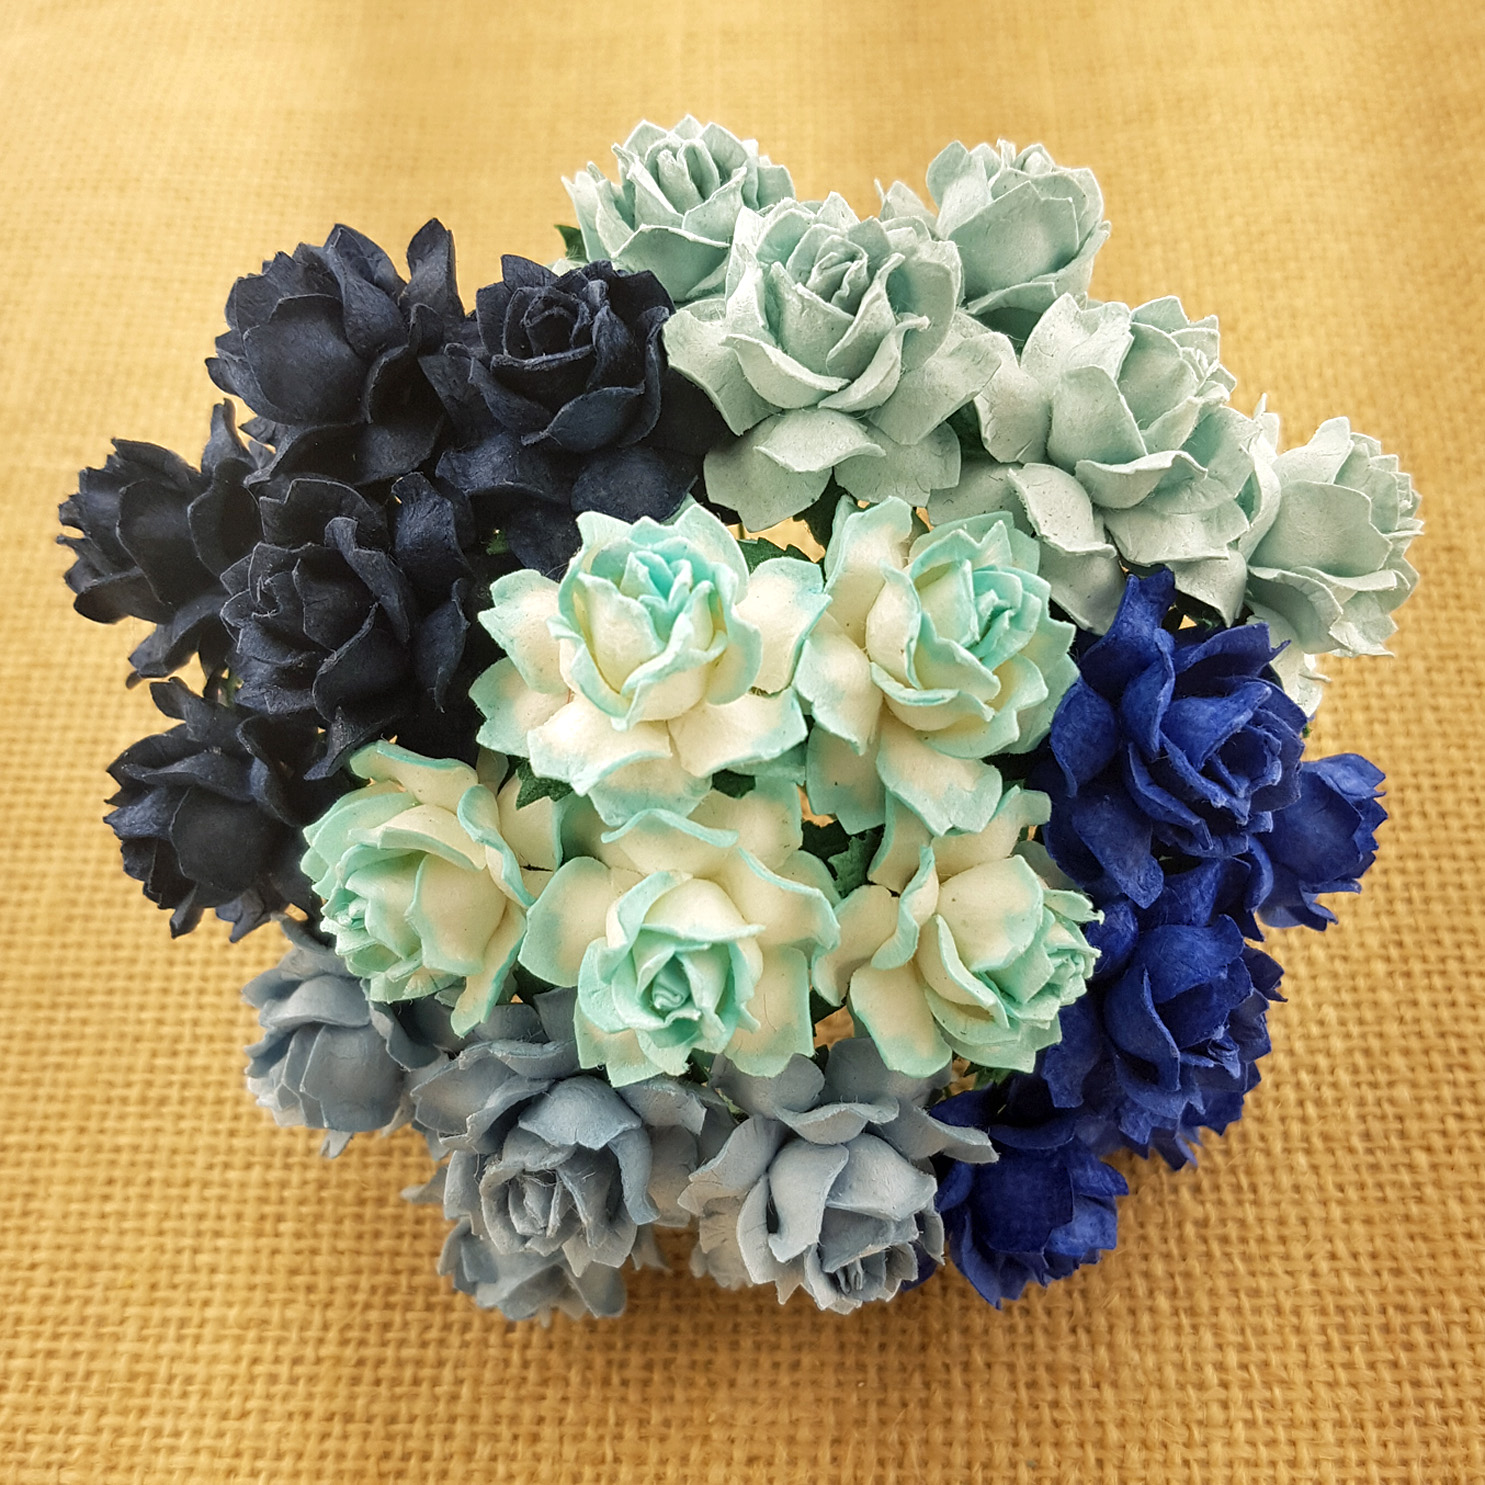 50 MIXED BLUE TONE MULBERRY PAPER COTTAGE ROSES - 5 COLOR